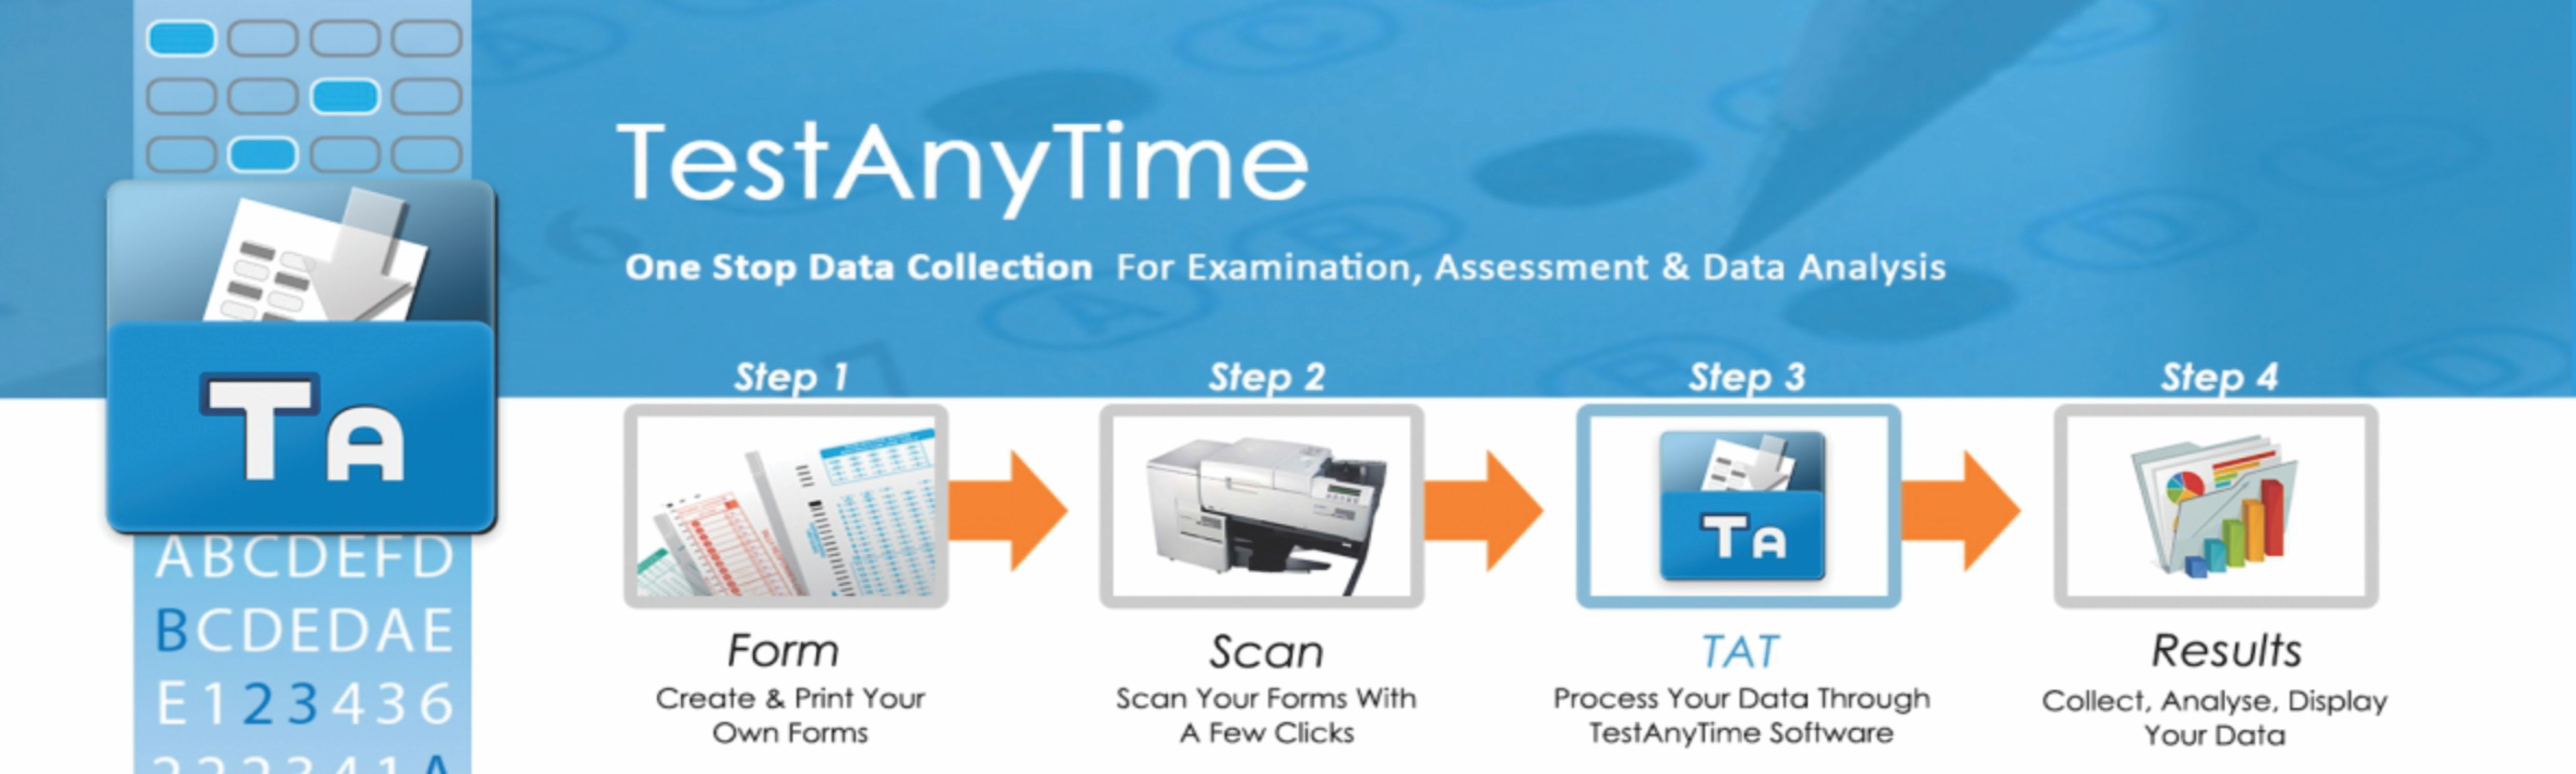 TestAnyTime OMR Software